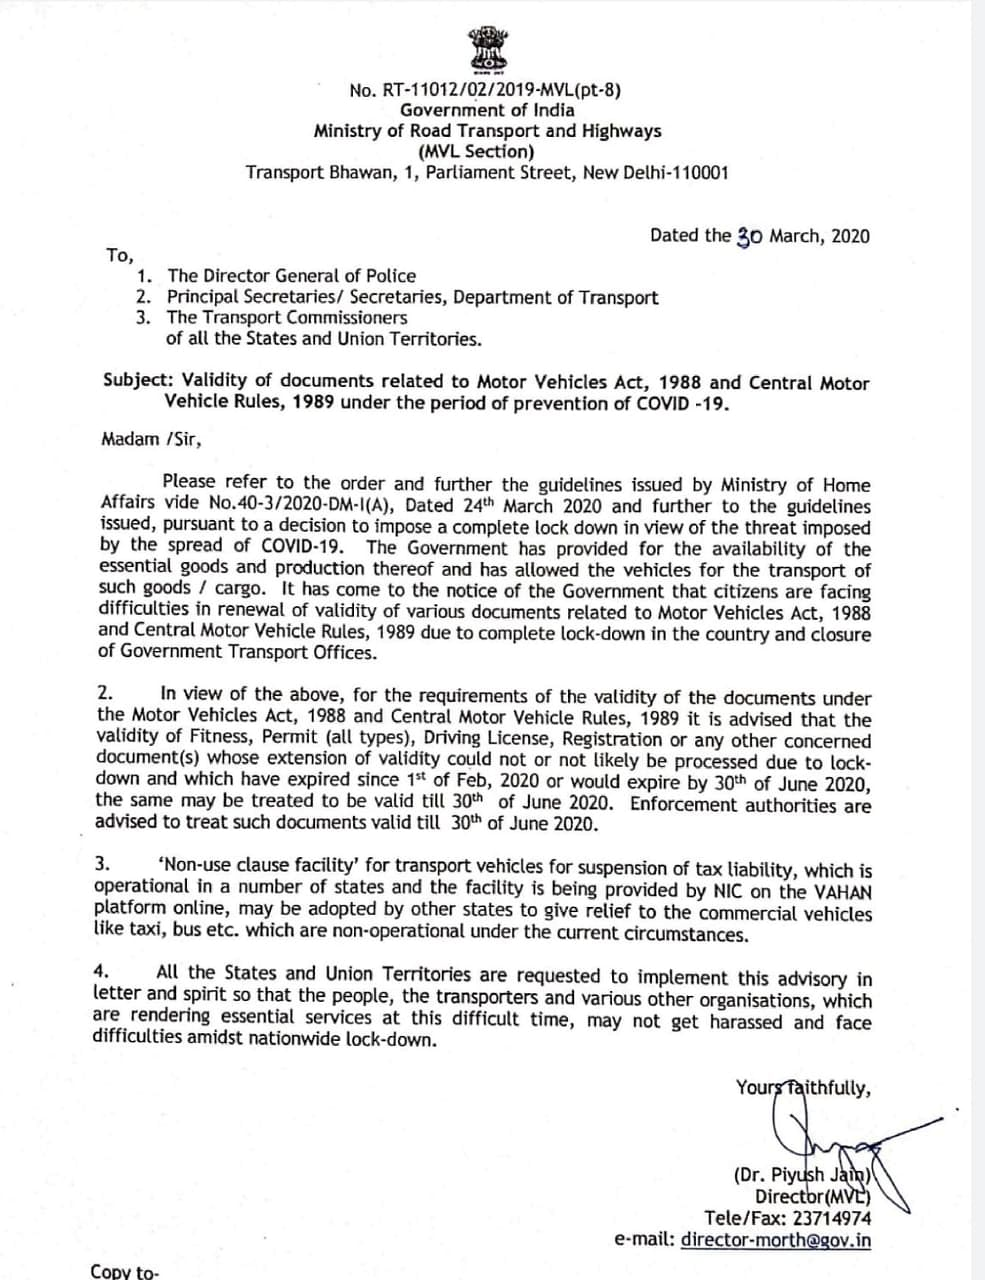 The advisory issued by the Union Transport Ministry